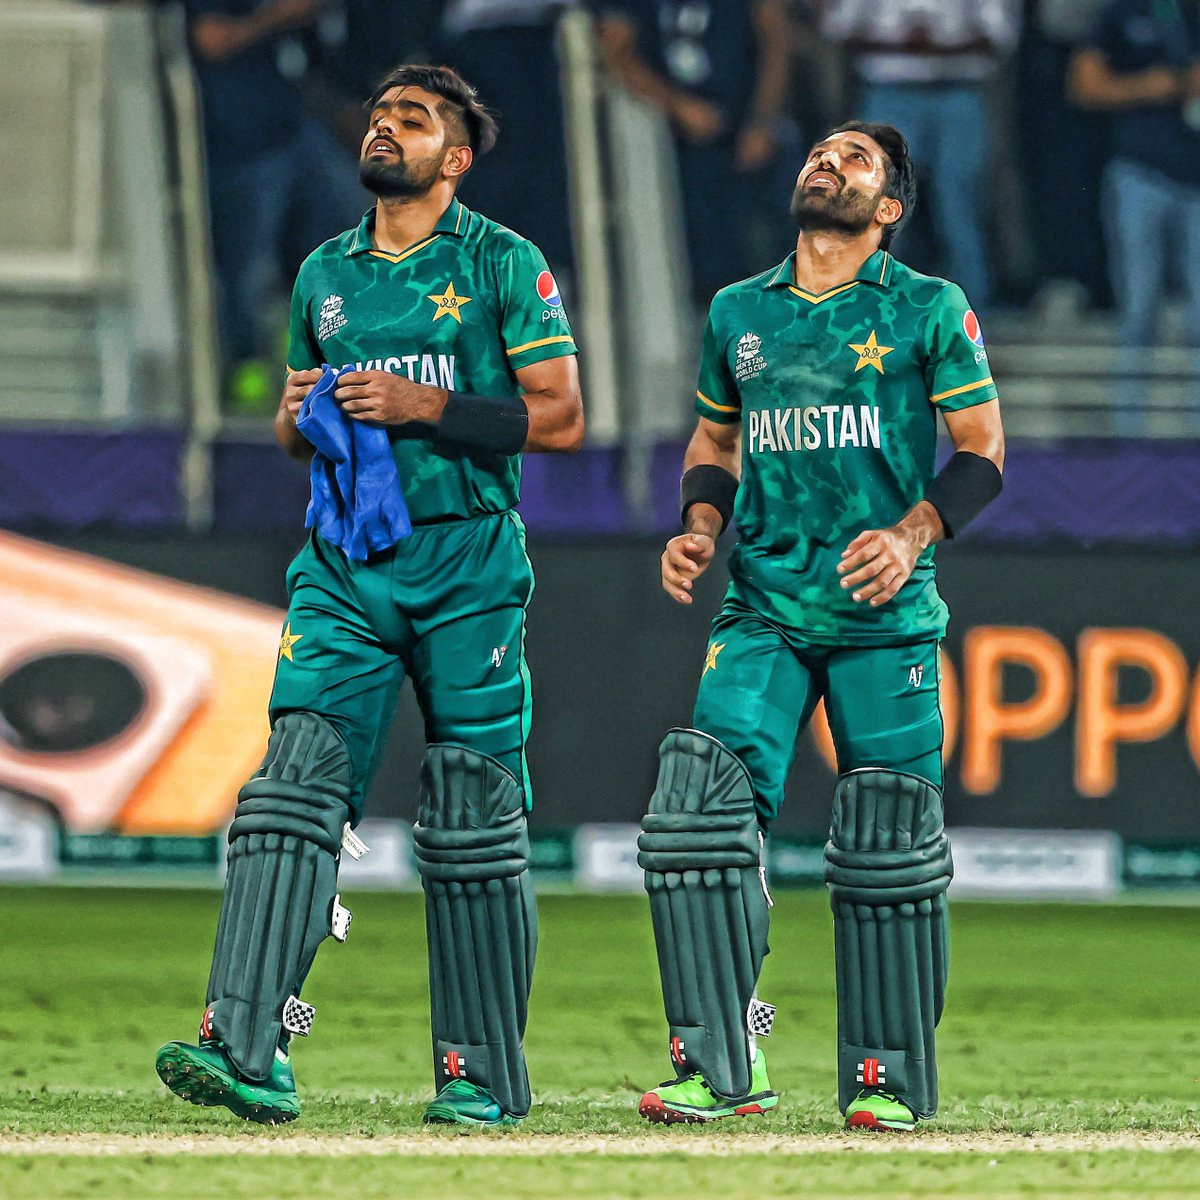 What a performance from this duo 🙌   Sum up their display in one word in the comments below 👇   #INDvPAK | #T20WorldCup https://t.co/WcF38QrJWZ